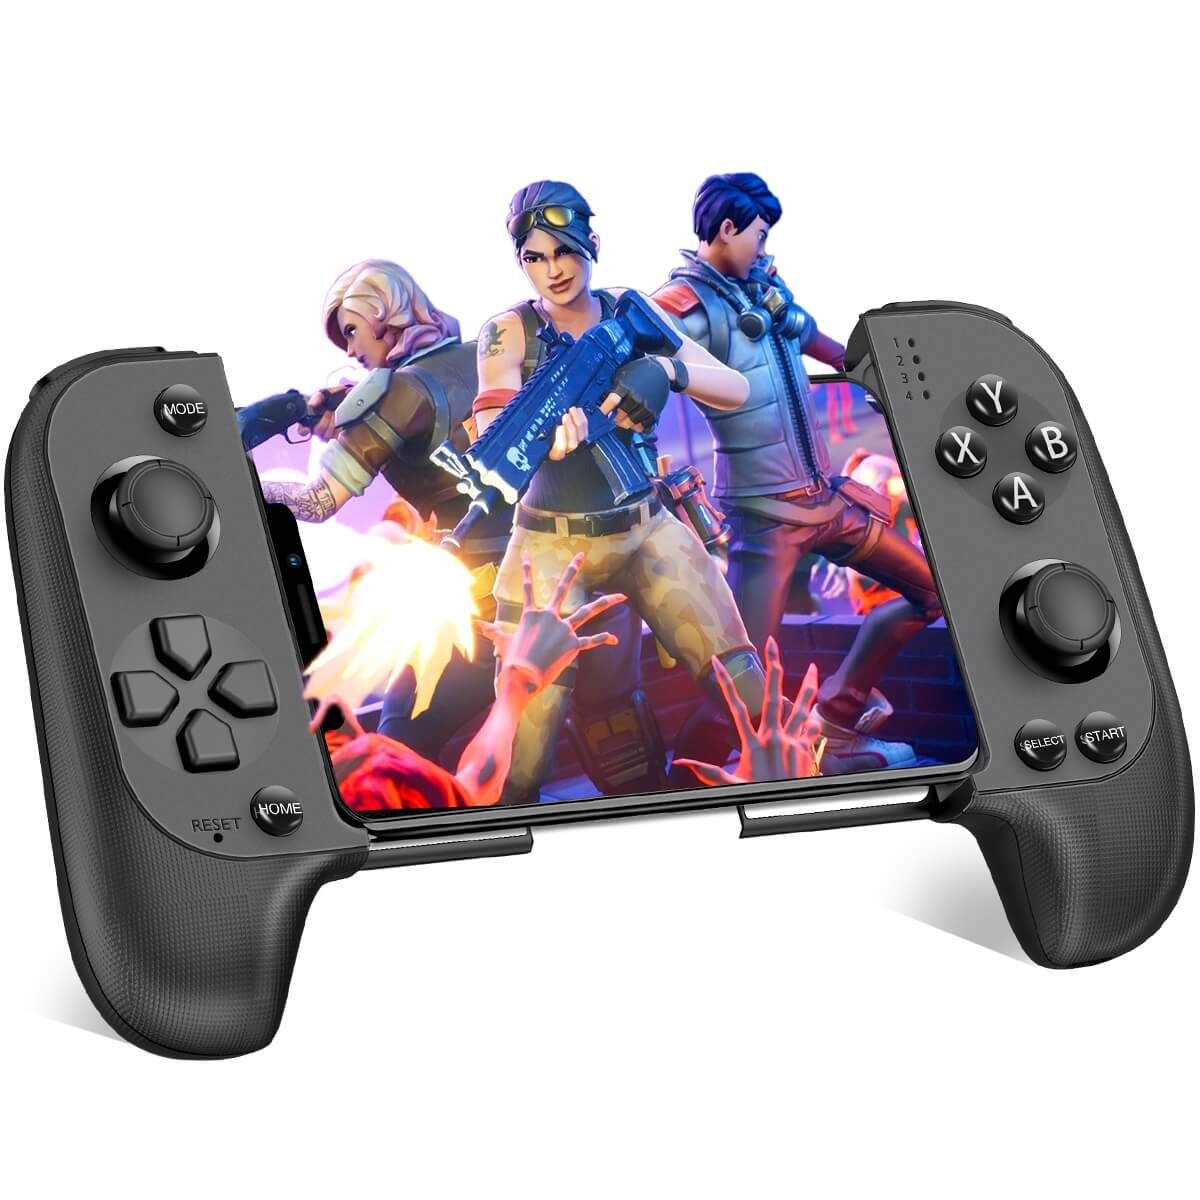 5 Best Gaming Controllers For Galaxy Note 10 10 Plus Fliptroniks Game Controller Galaxy Note 10 Games